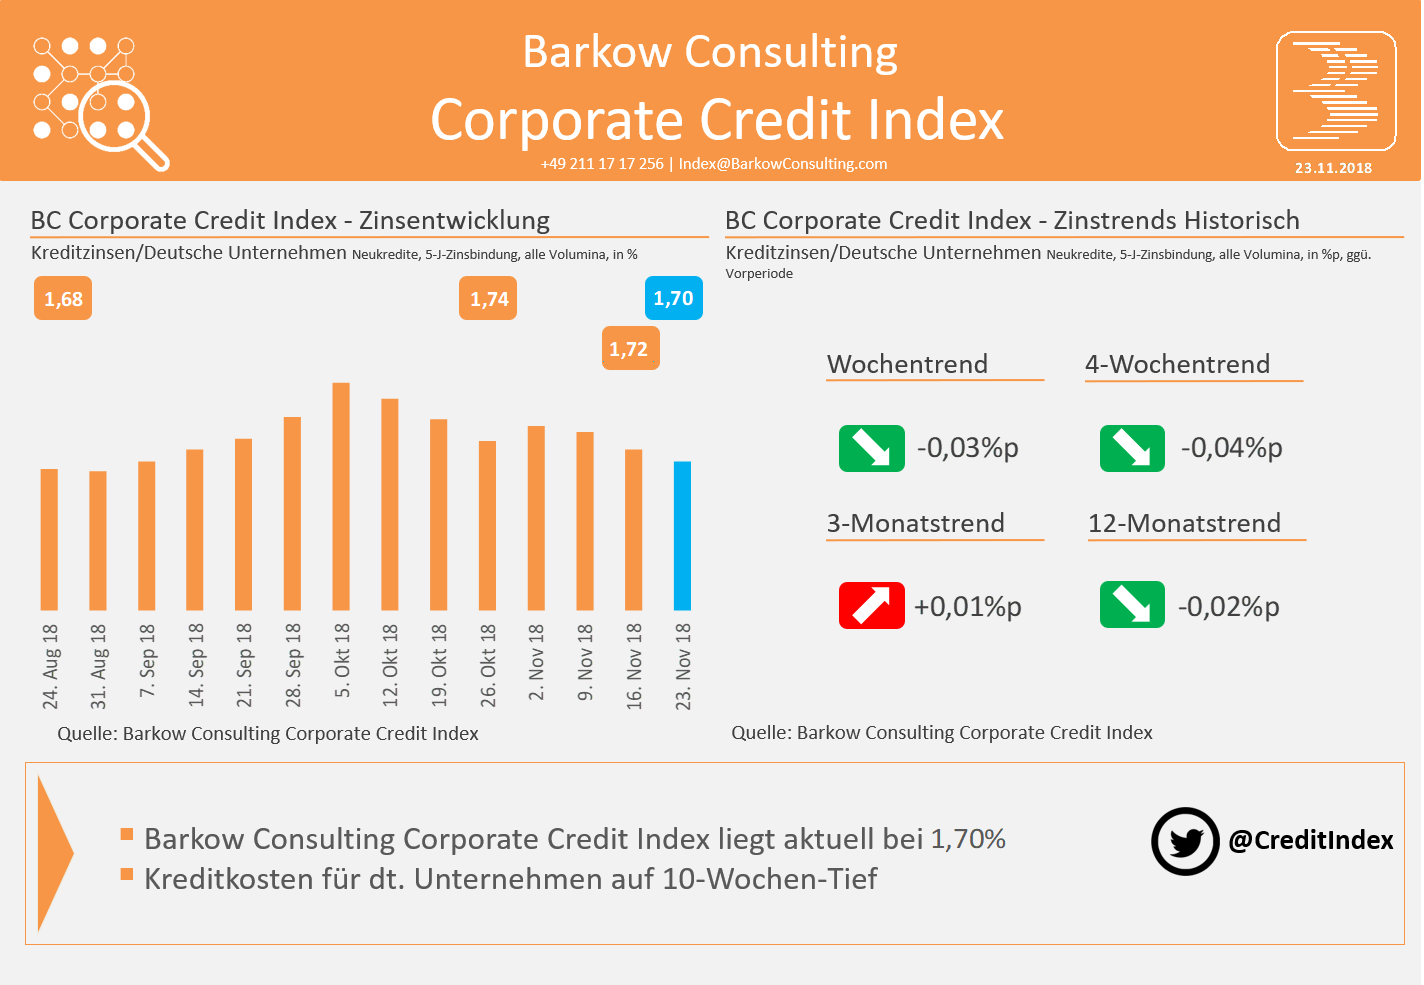 Barkow Consulting Corporate Credit Index im November 2018